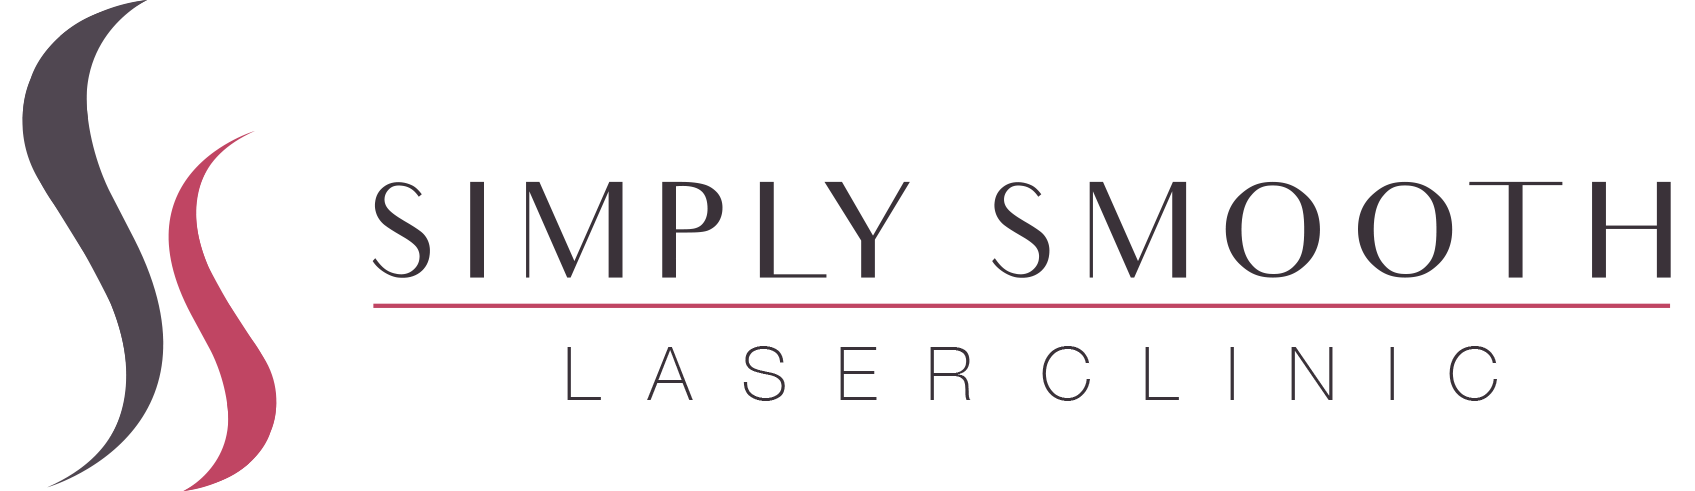 Simply Smooth Laser Clinic | Hair Removal | Beauty Treatments | Campbelltown